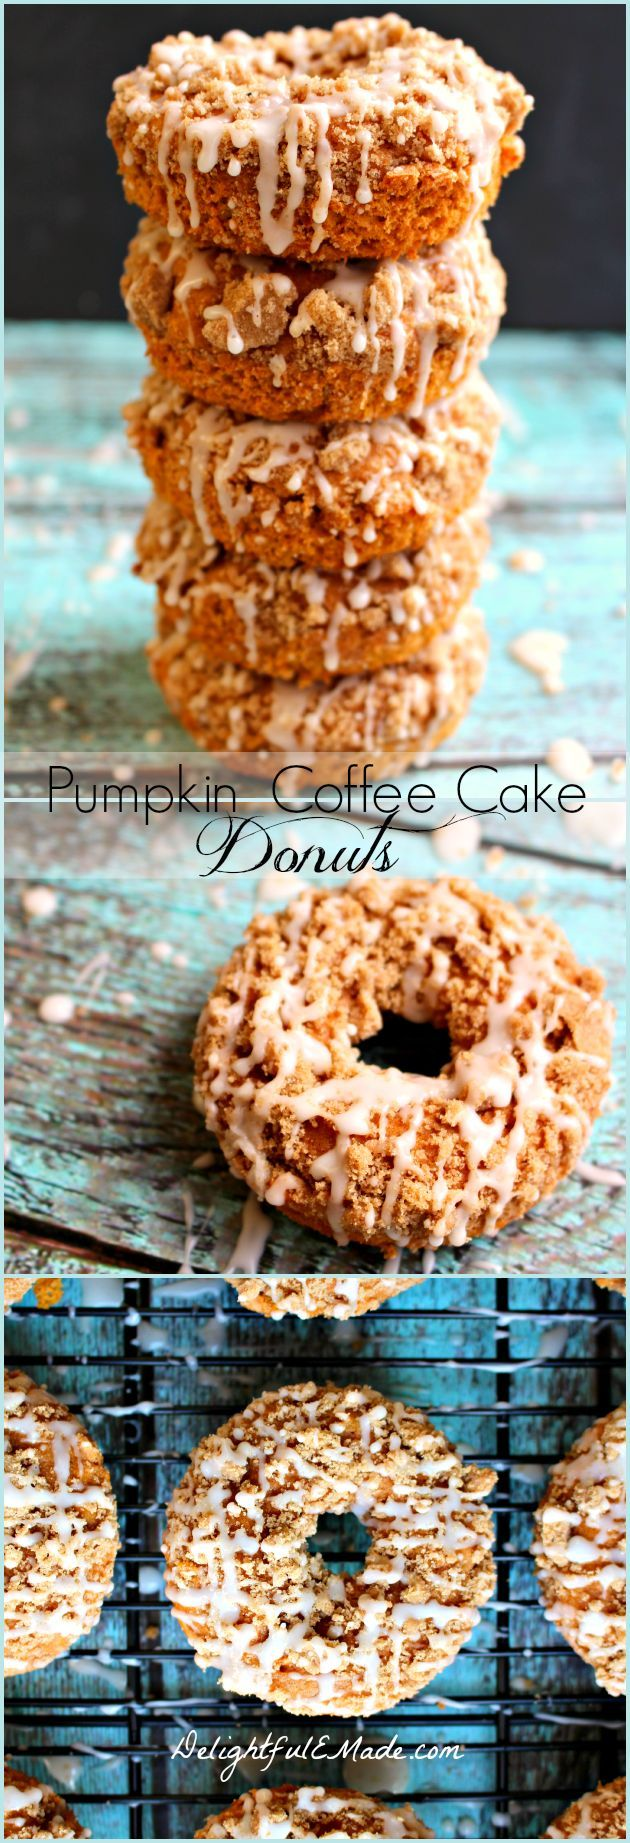 Pumpkin Coffee Cake Donuts by DelightfulEMade.com | Moist, pumpkin spice cake topped with a brown sugar struessel and a vanilla glaze, these donuts are HEAVENLY! | This is a really popular pin!!